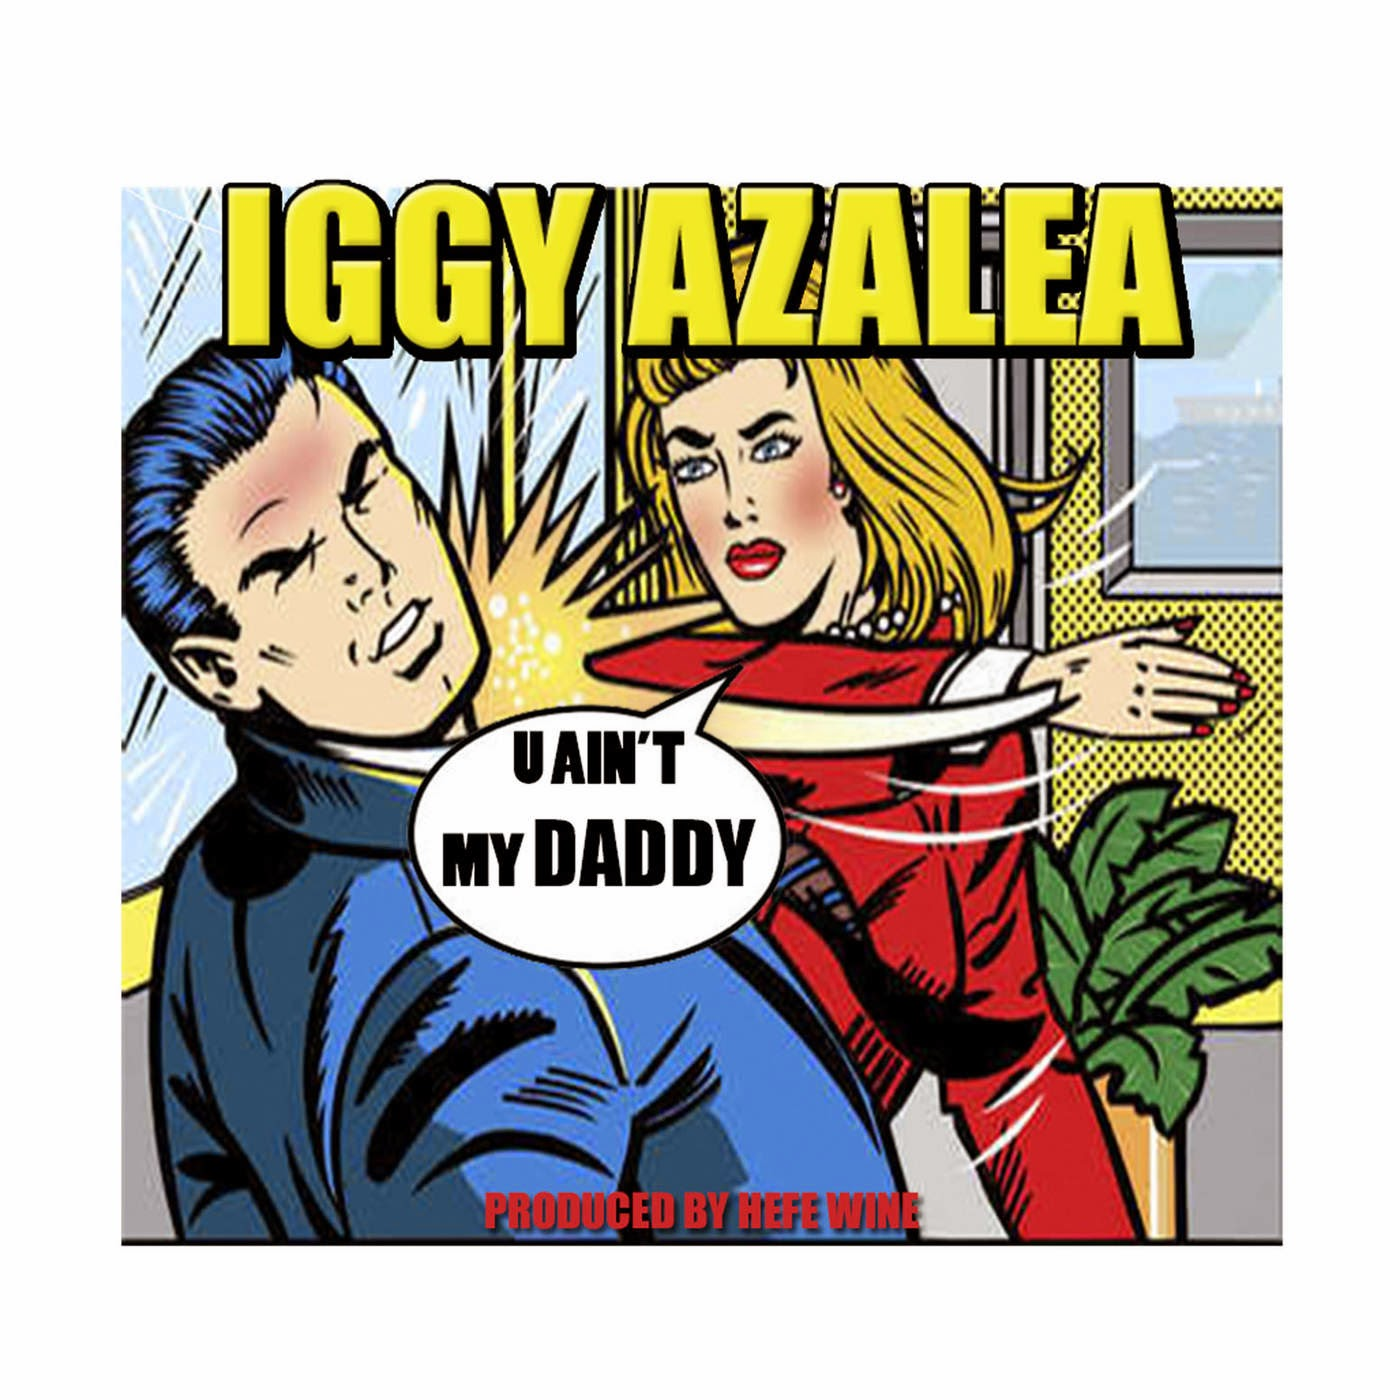 Iggy Azalea - U Ain't My Daddy - Single Cover